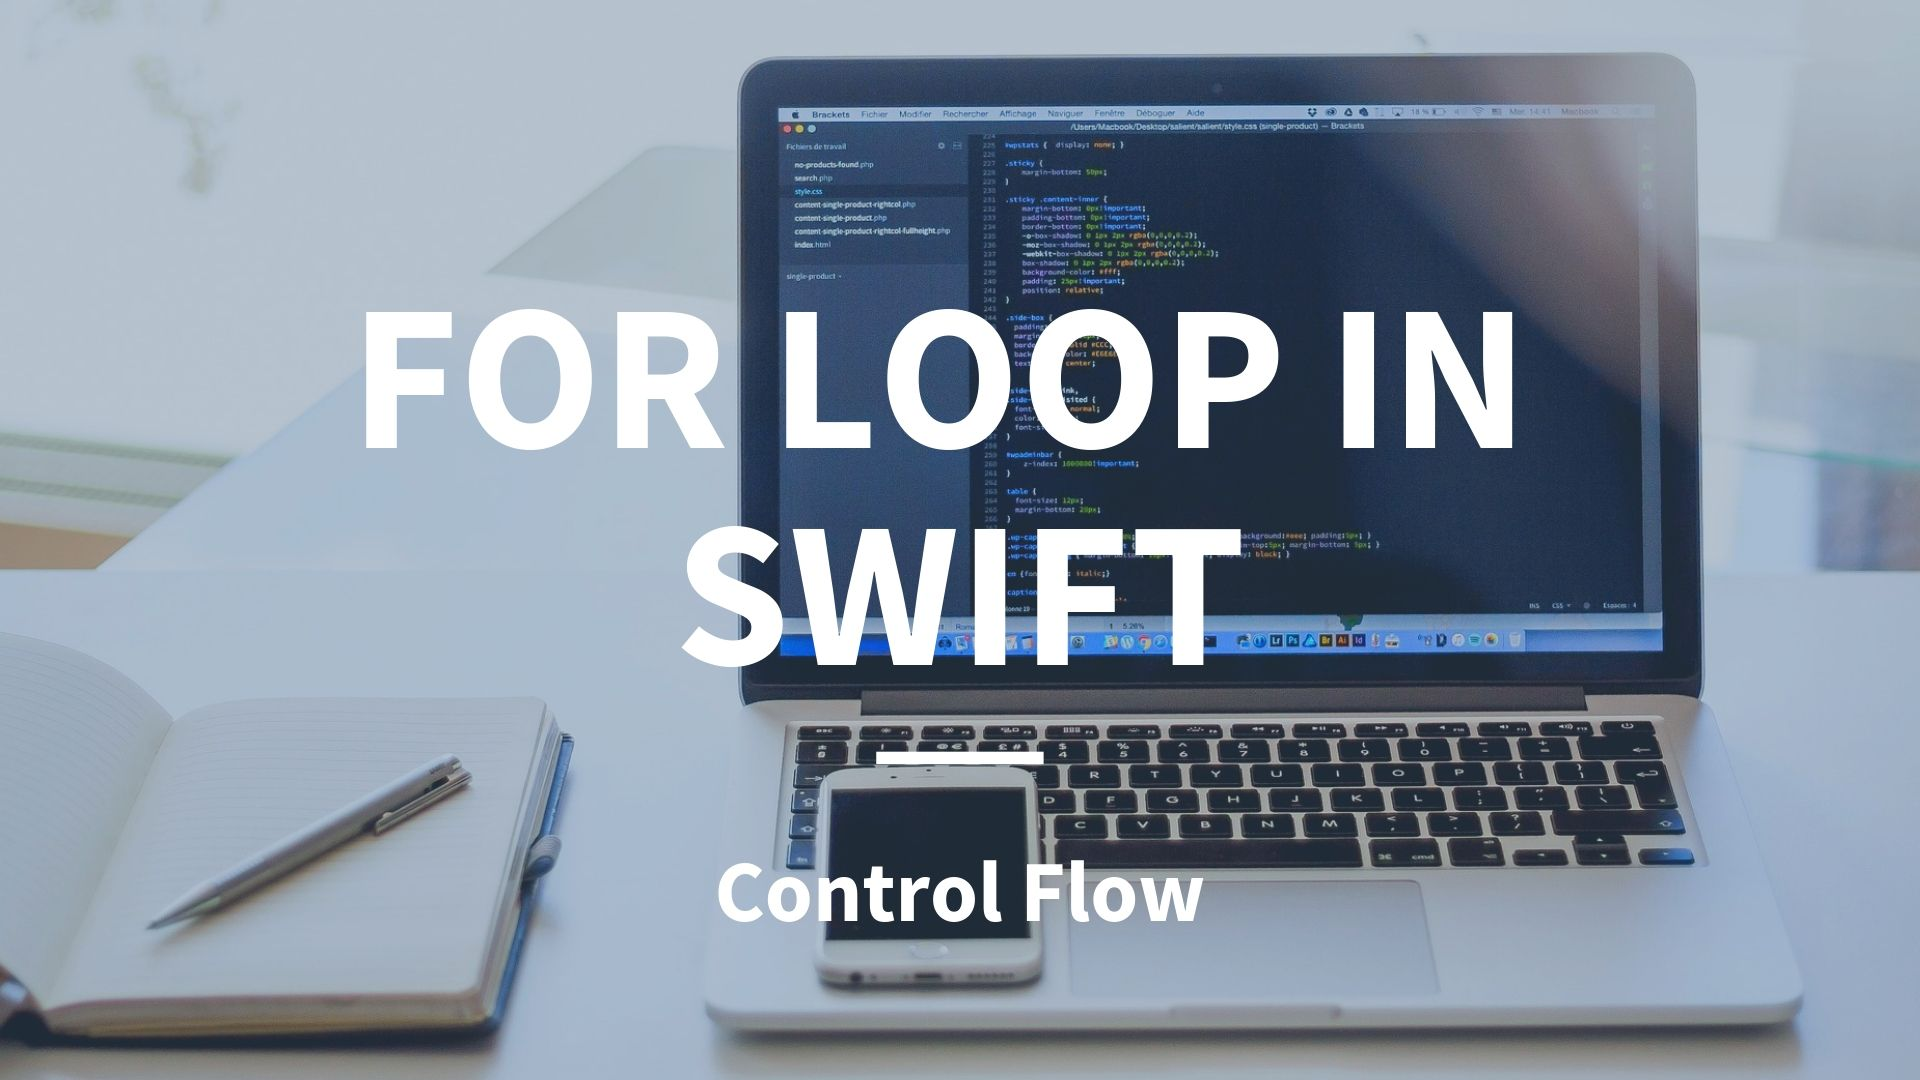 For Loop In Swift Explained